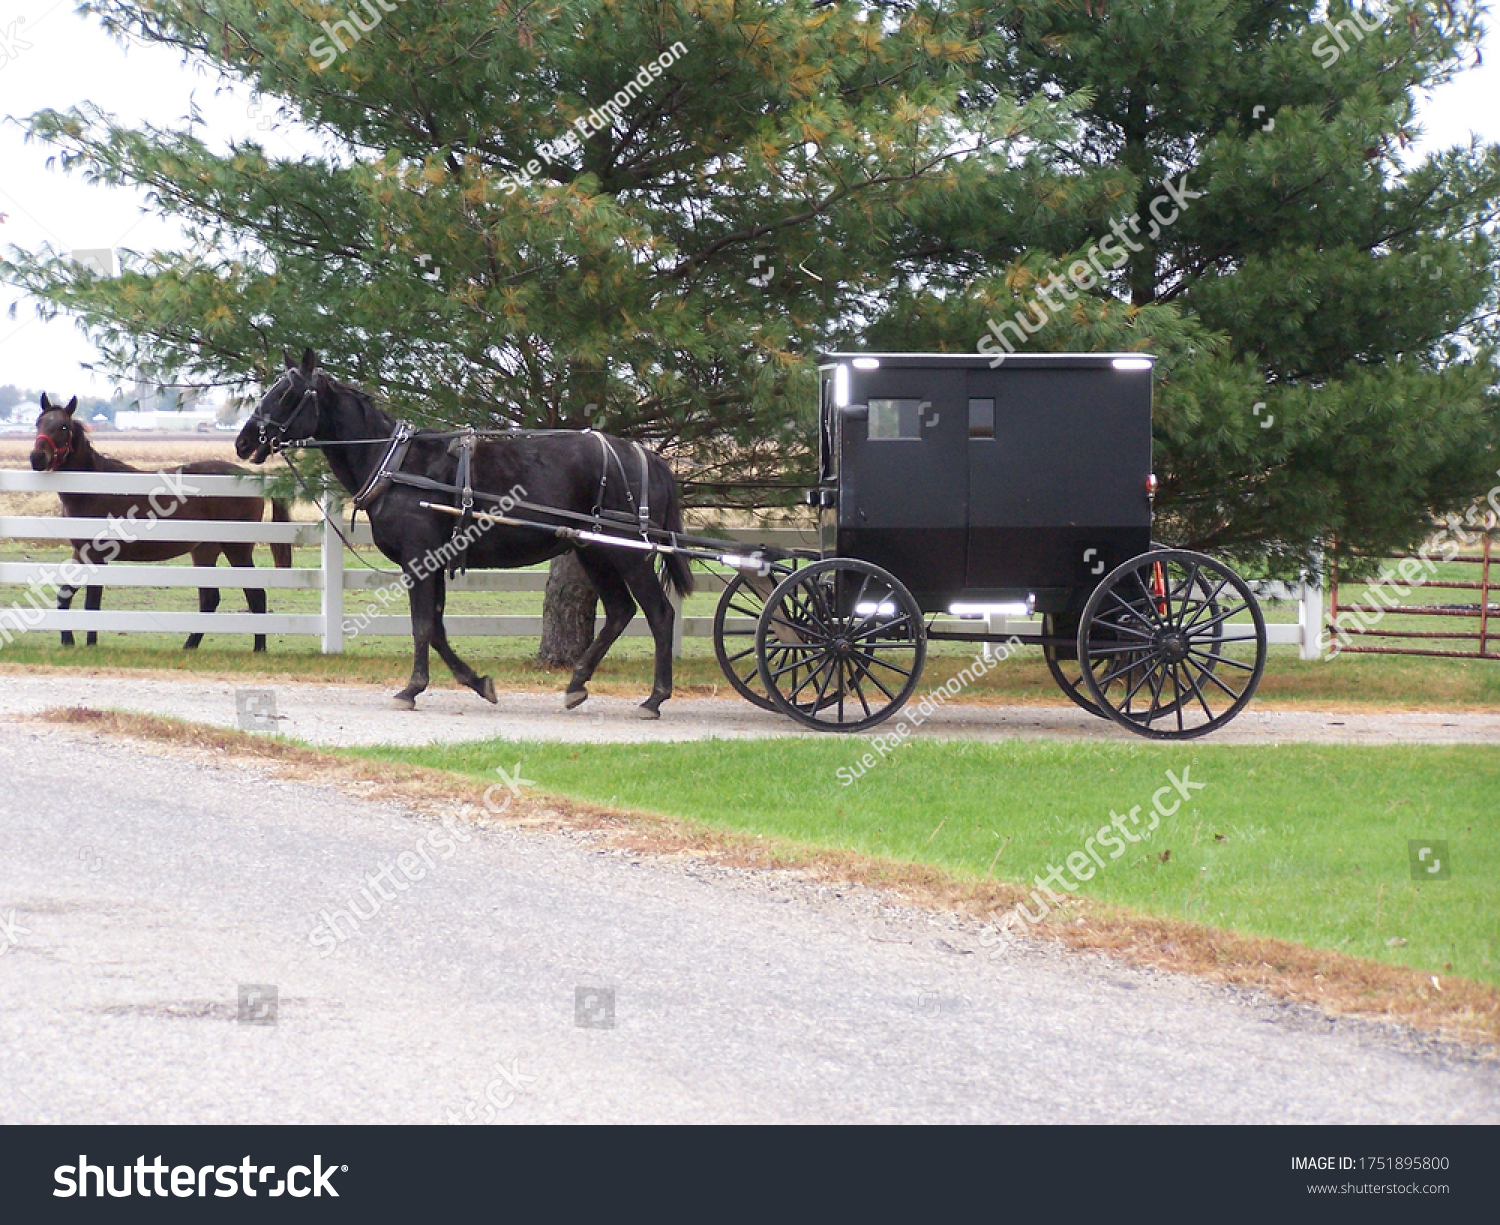 stock-photo-amish-black-horse-and-buggy-